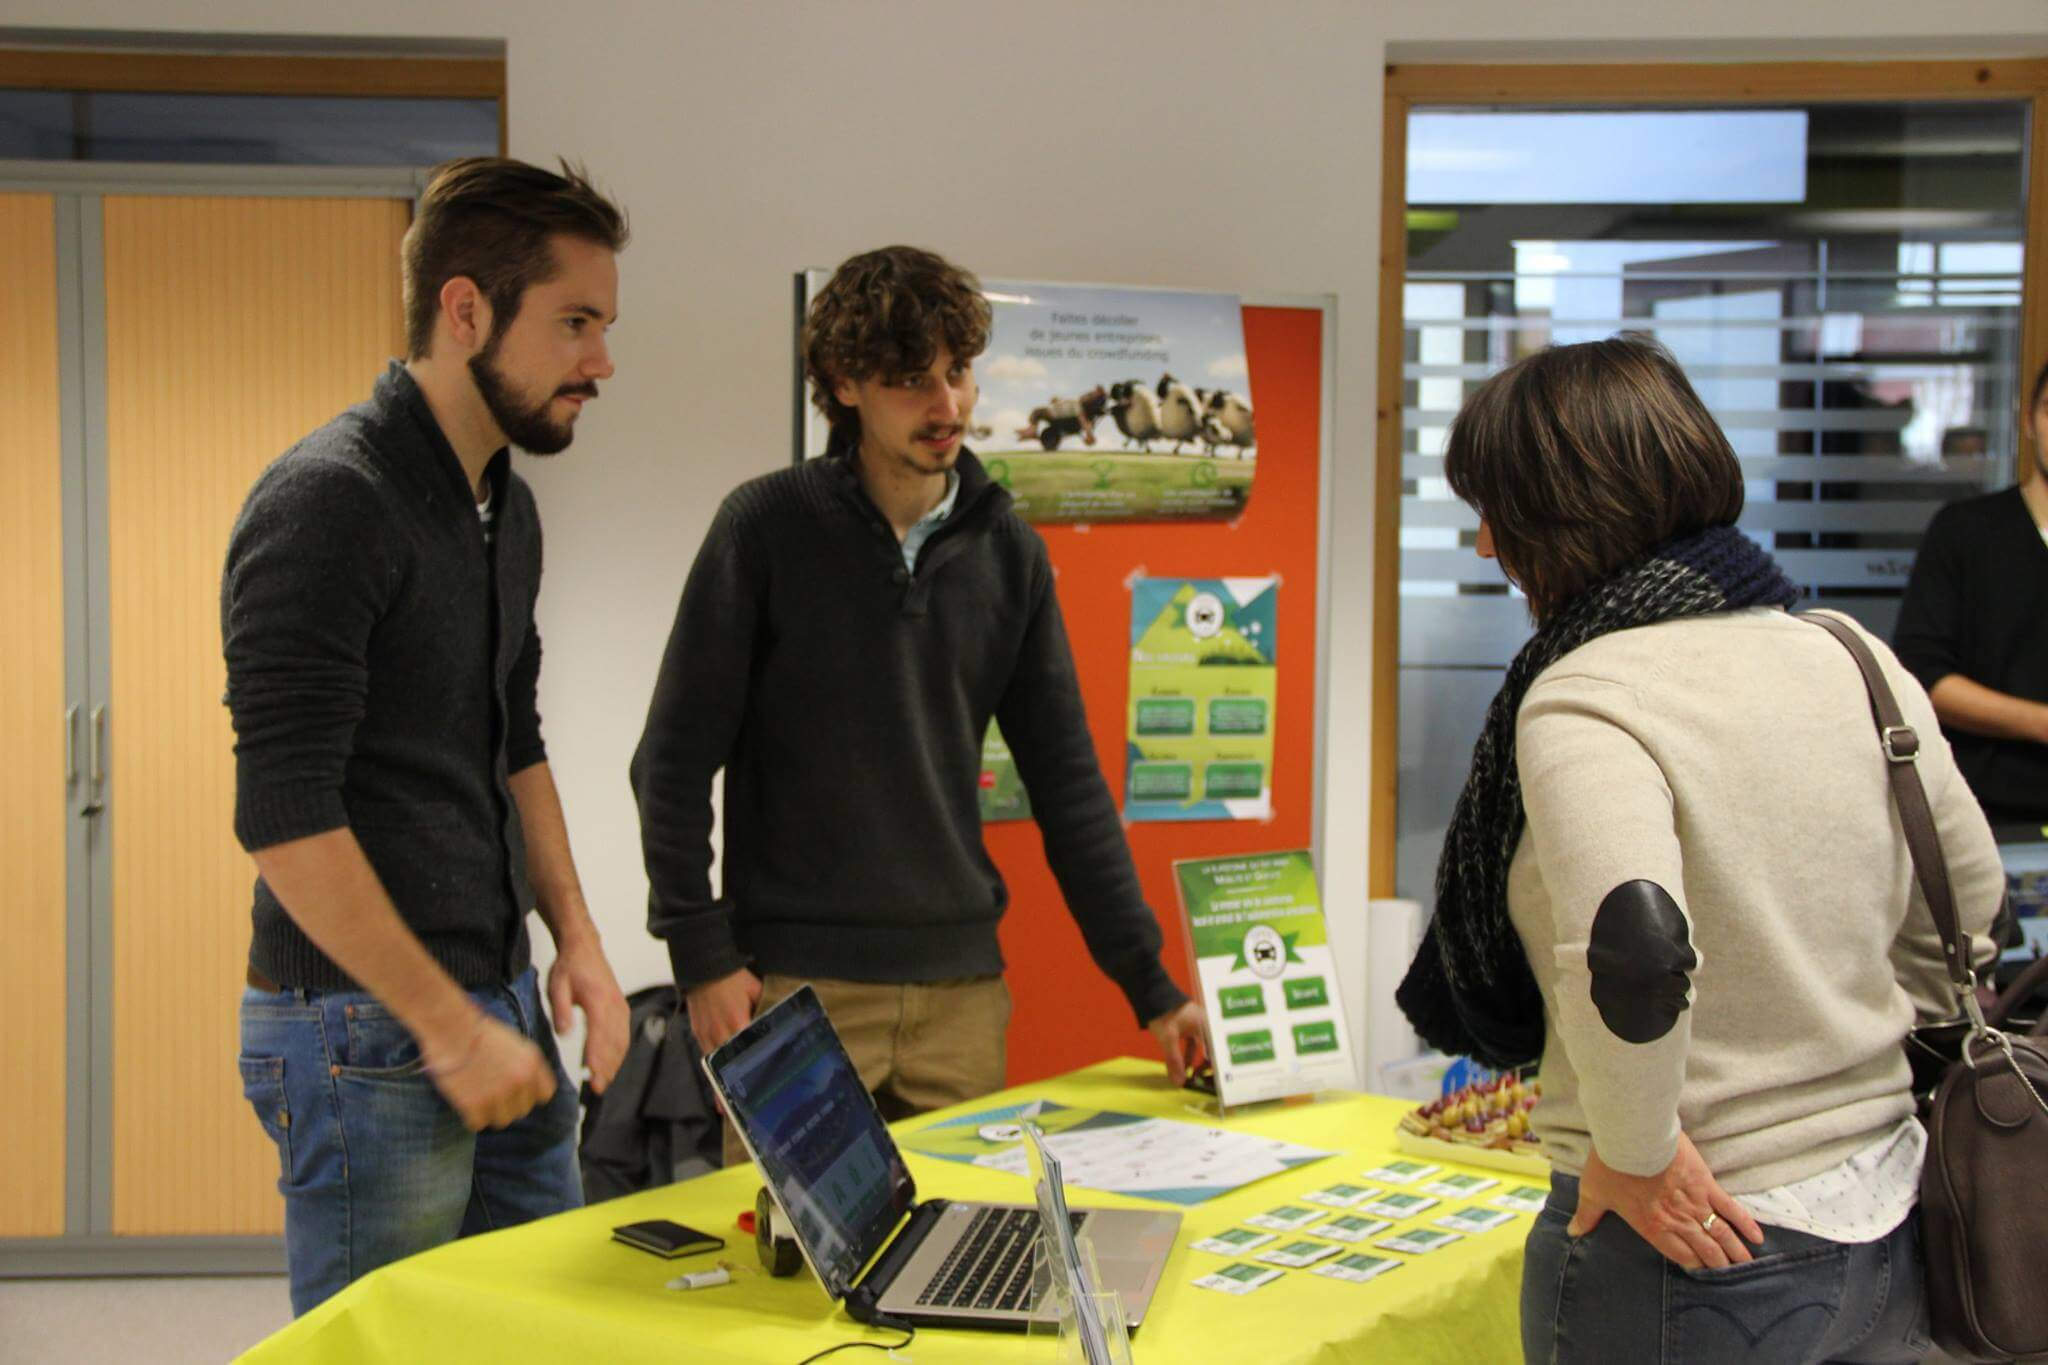 OpenCar, étudiants, entrepreneurs, covoiturage, plateforme, gratuit, local, projet, start-up